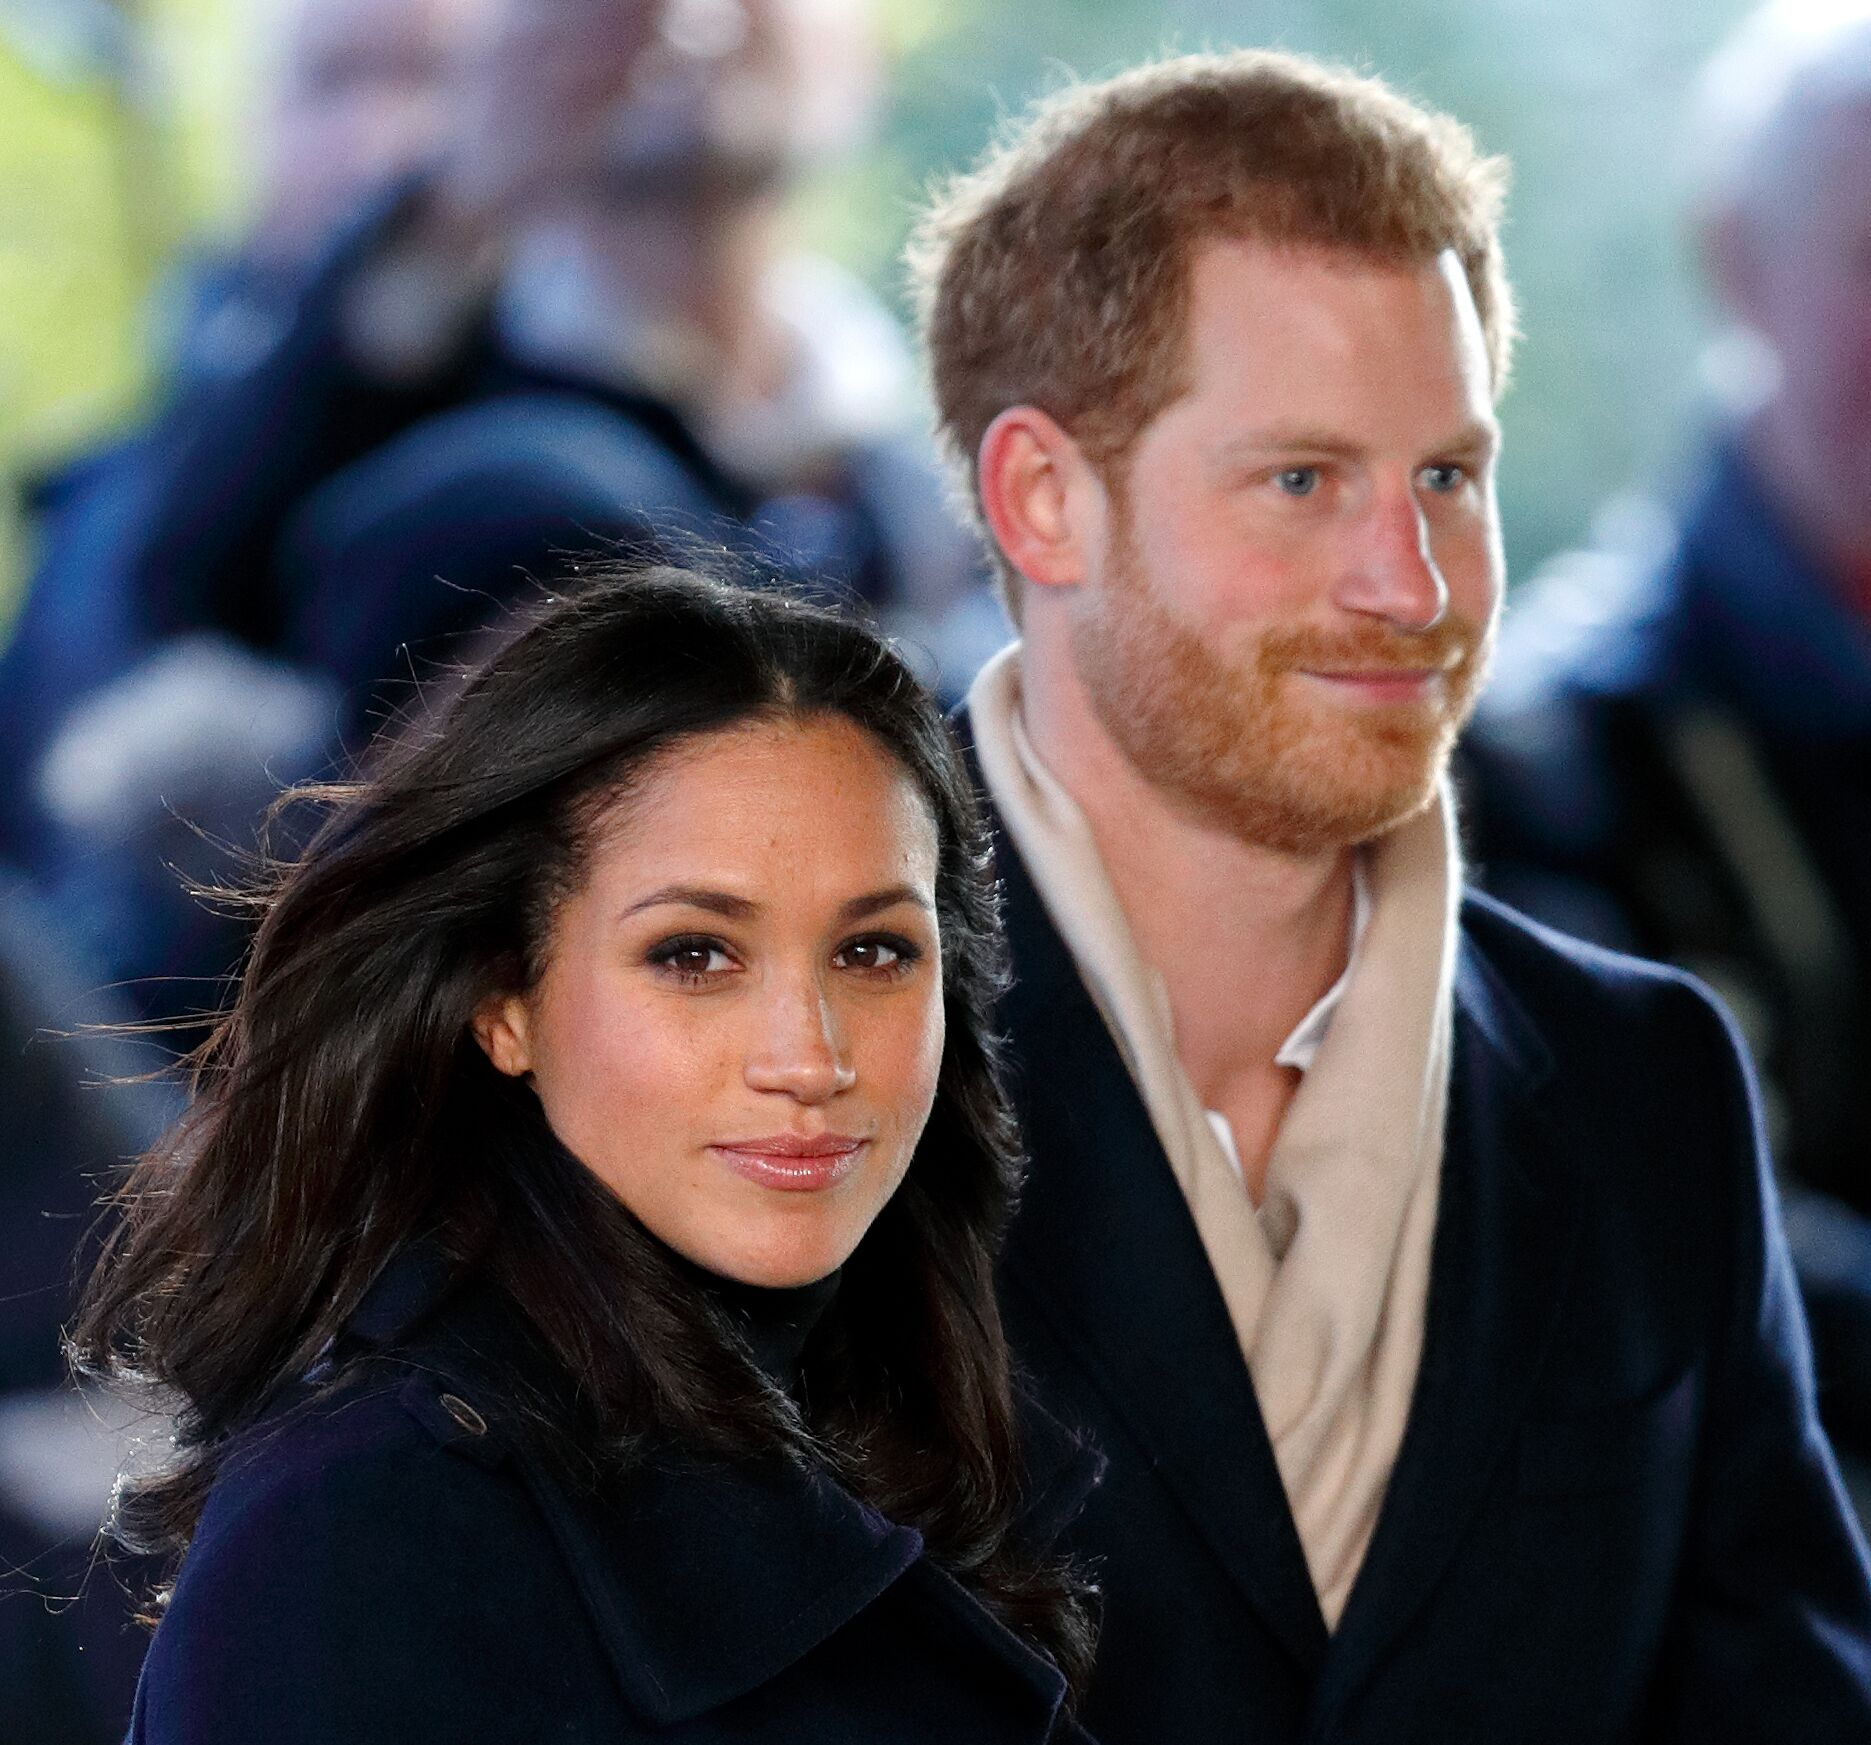 Meghan Markle and Prince Harry attend a Terrence Higgins Trust World AIDS Day charity fair at Nottingham Contemporary on December 1, 2017 in Nottingham, England. Prince Harry and Meghan Markle announced their engagement | Photo: Getty Images